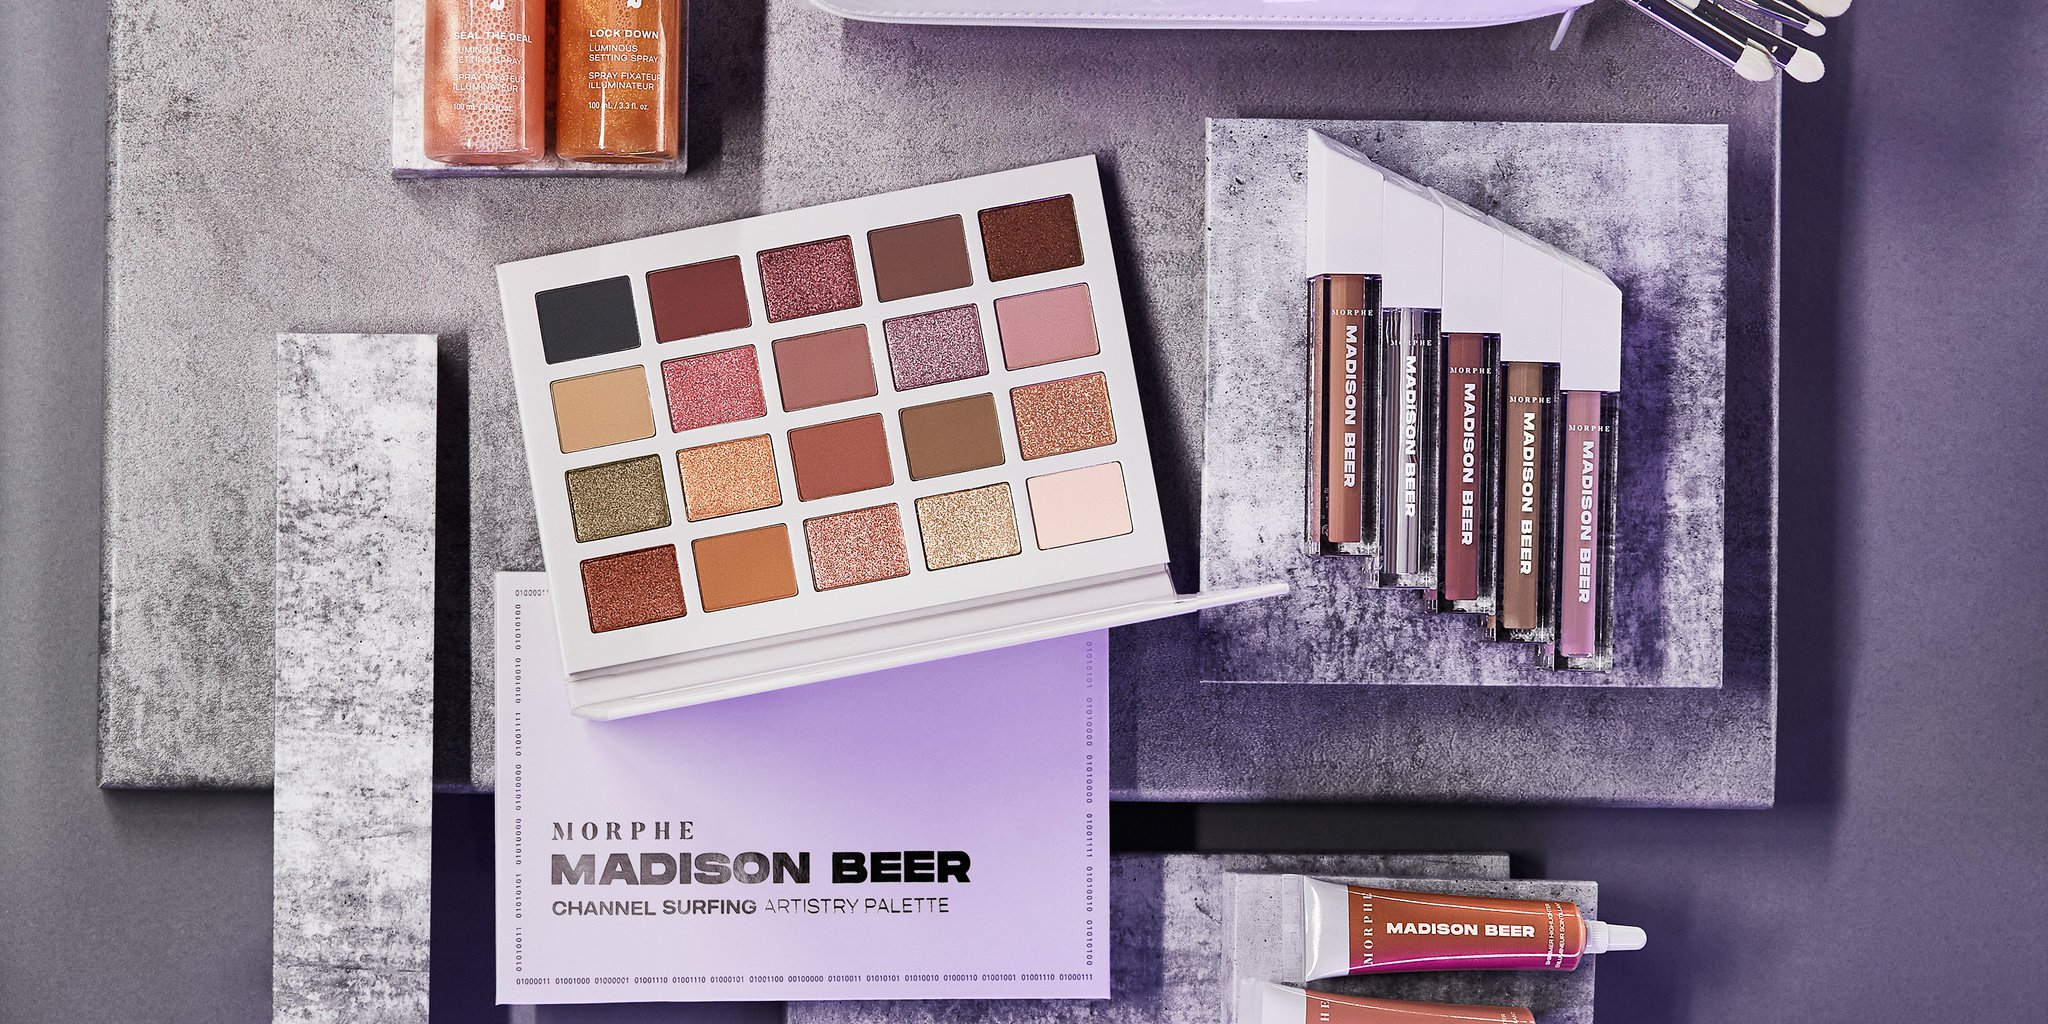 Morphe On Twitter The Madisonbeer Collection Is Now Available On Https T Co Tauaf4i4wx Select Morphe Stores Selfridges Sephoracanada Morphe Morphexmadisonbeer Https T Co O5ob3abpkg The has reached a size of 104 articles. select morphe stores selfridges